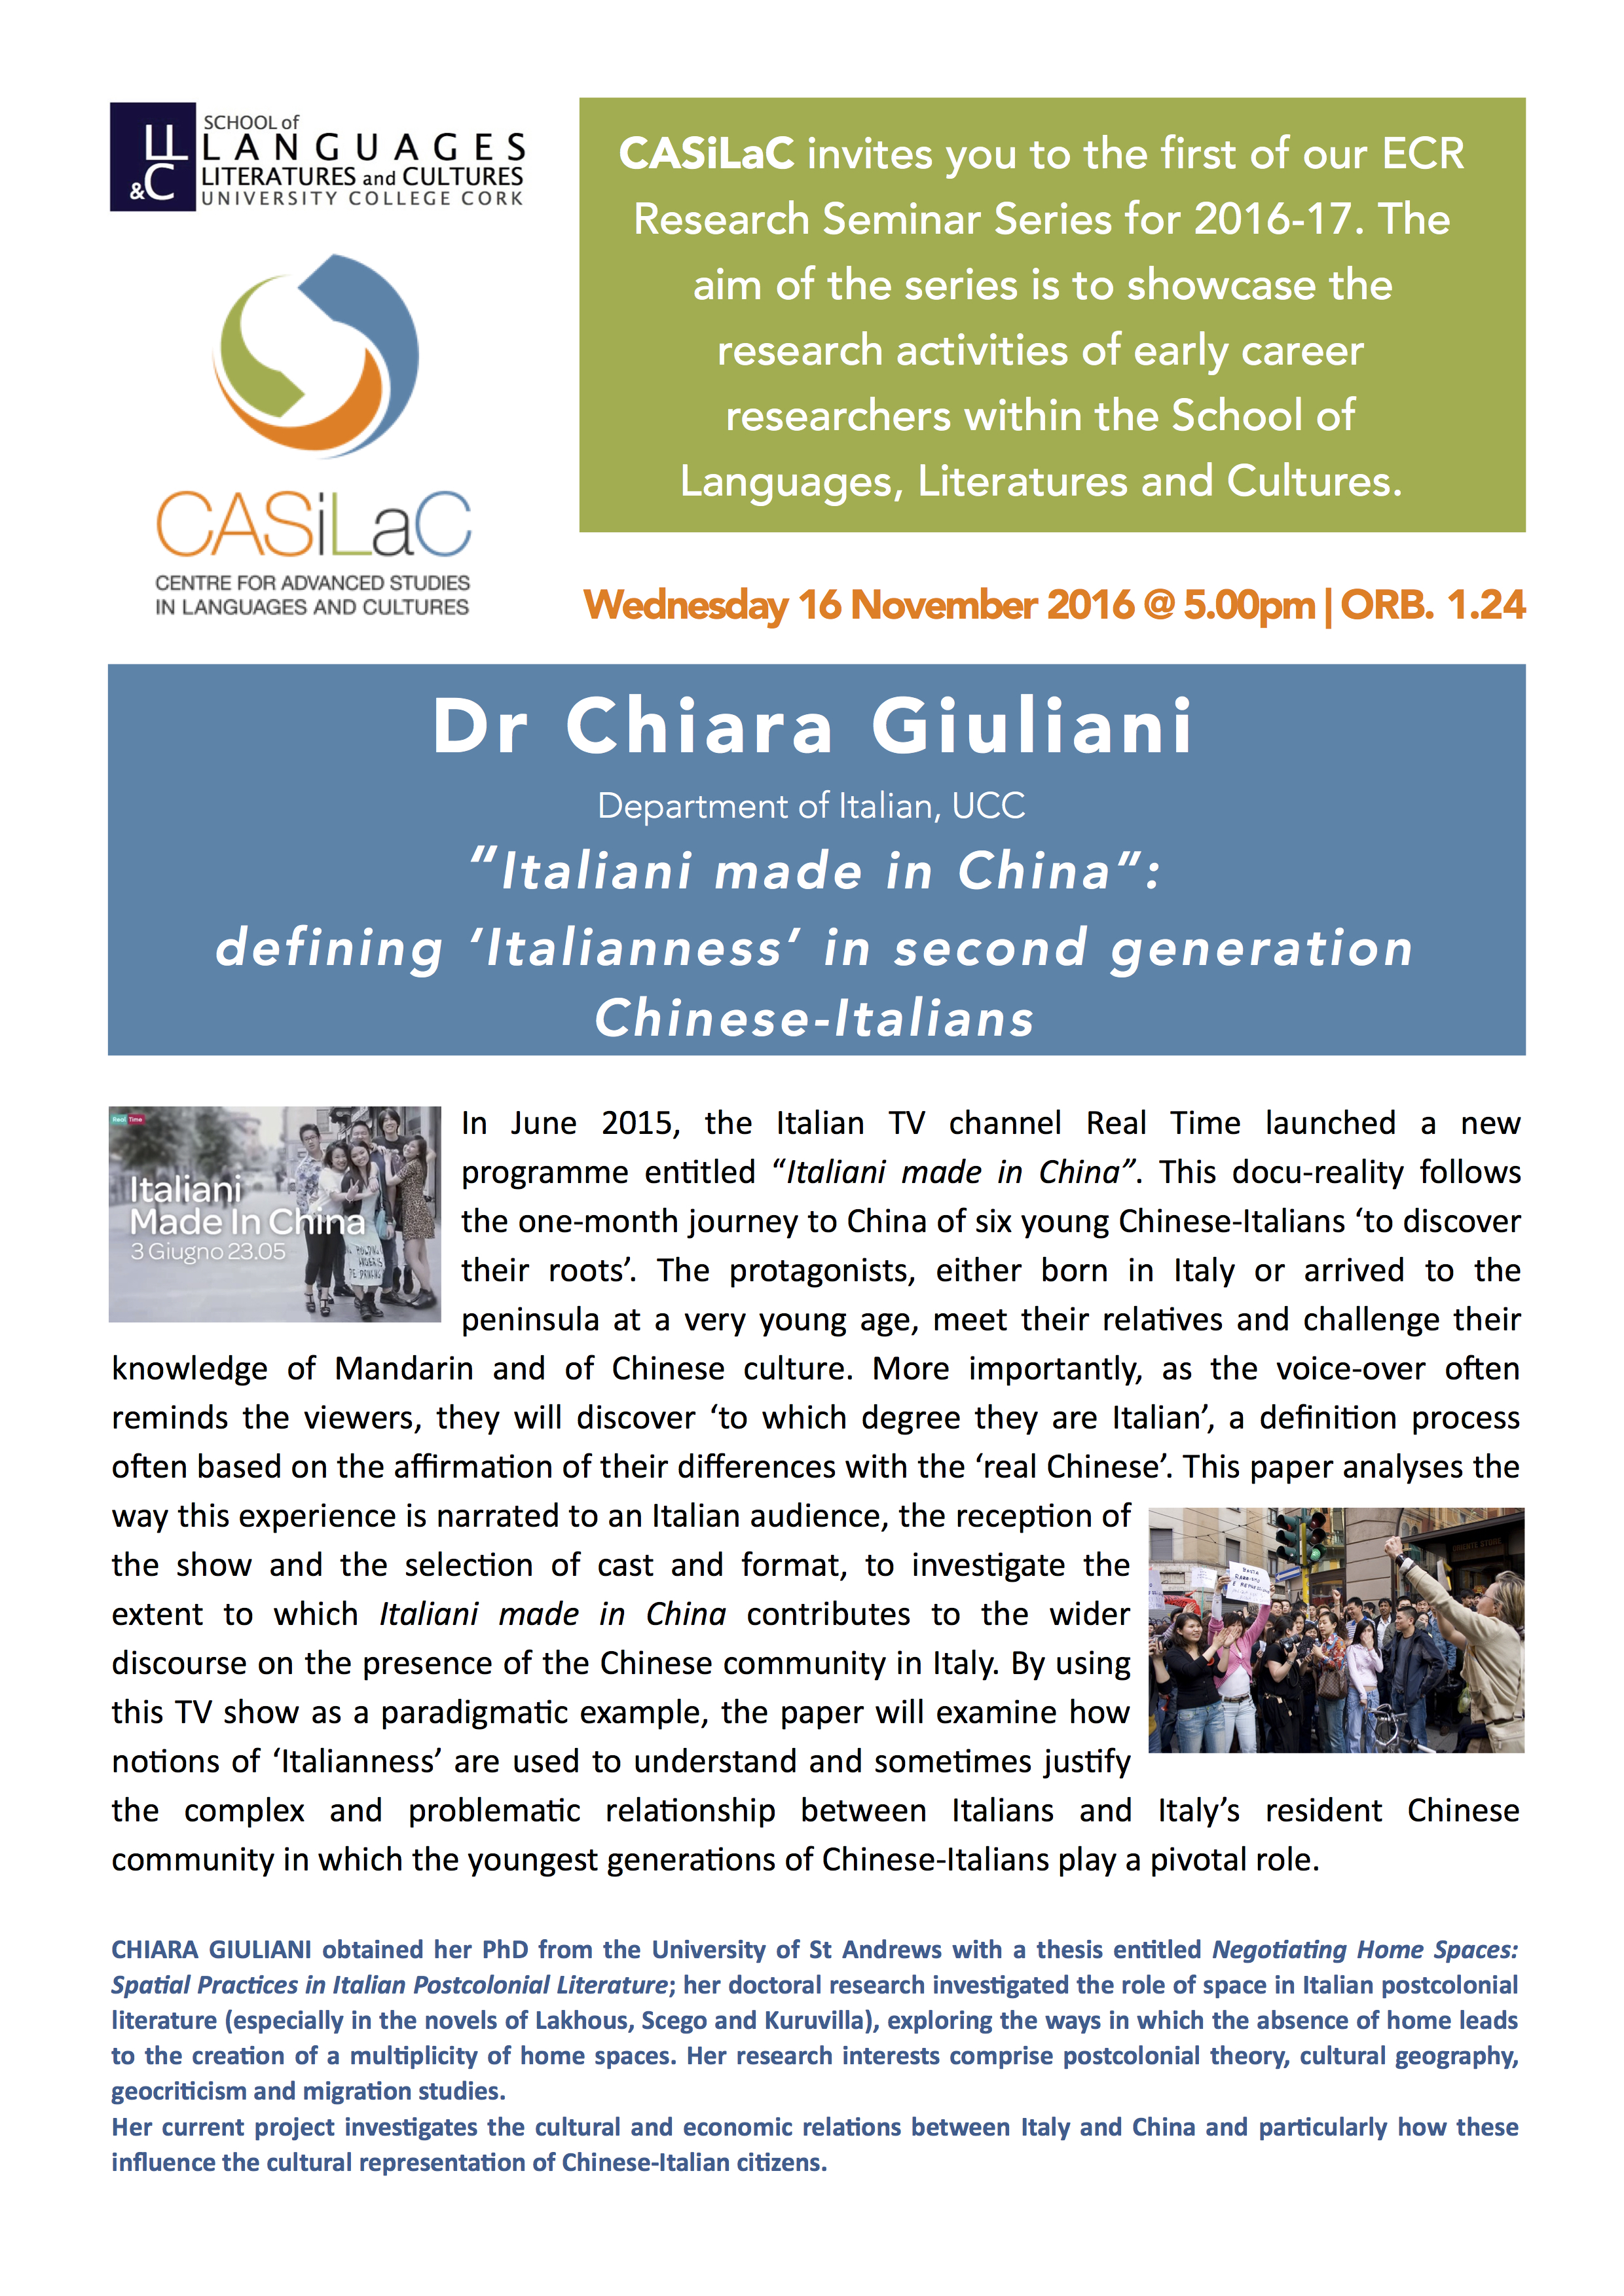 """Italiani made in China"": Defining 'Italianness' in second generation Chinese-Italians. by Dr CHIARA GIULIANI"